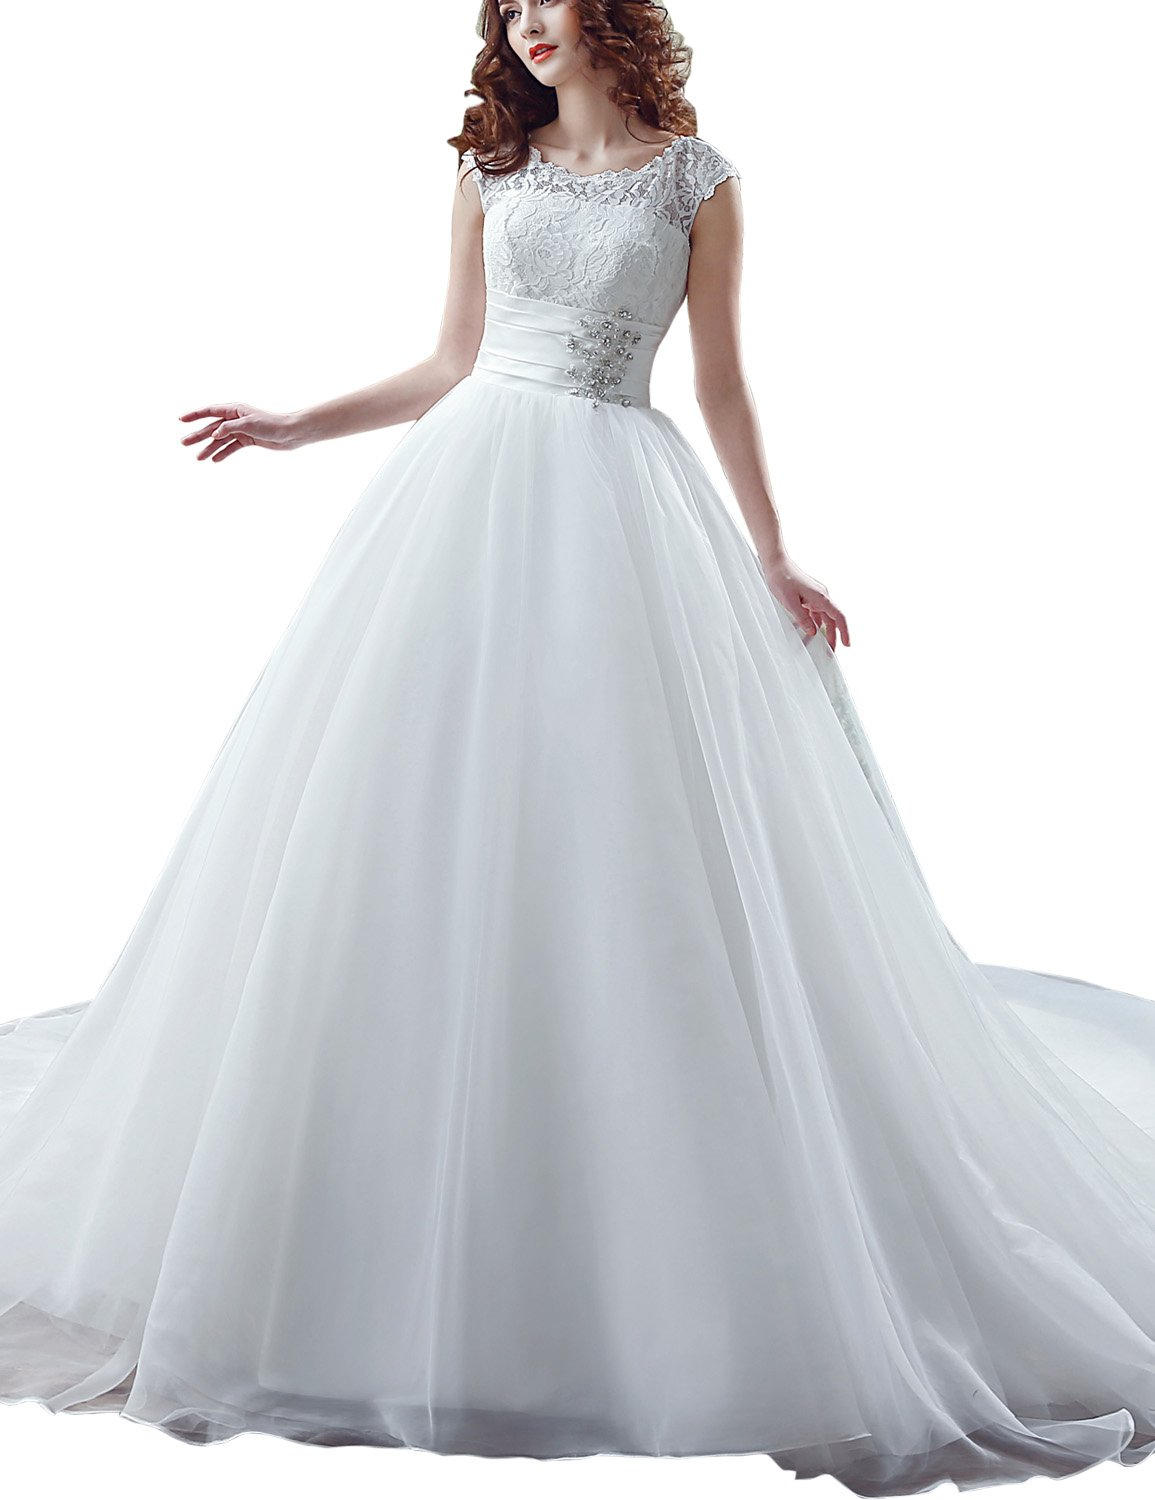 Sarahbridal Women's Lace Tulle Wedding Dress A-Line Brial Gown with Crystal Ivory US12